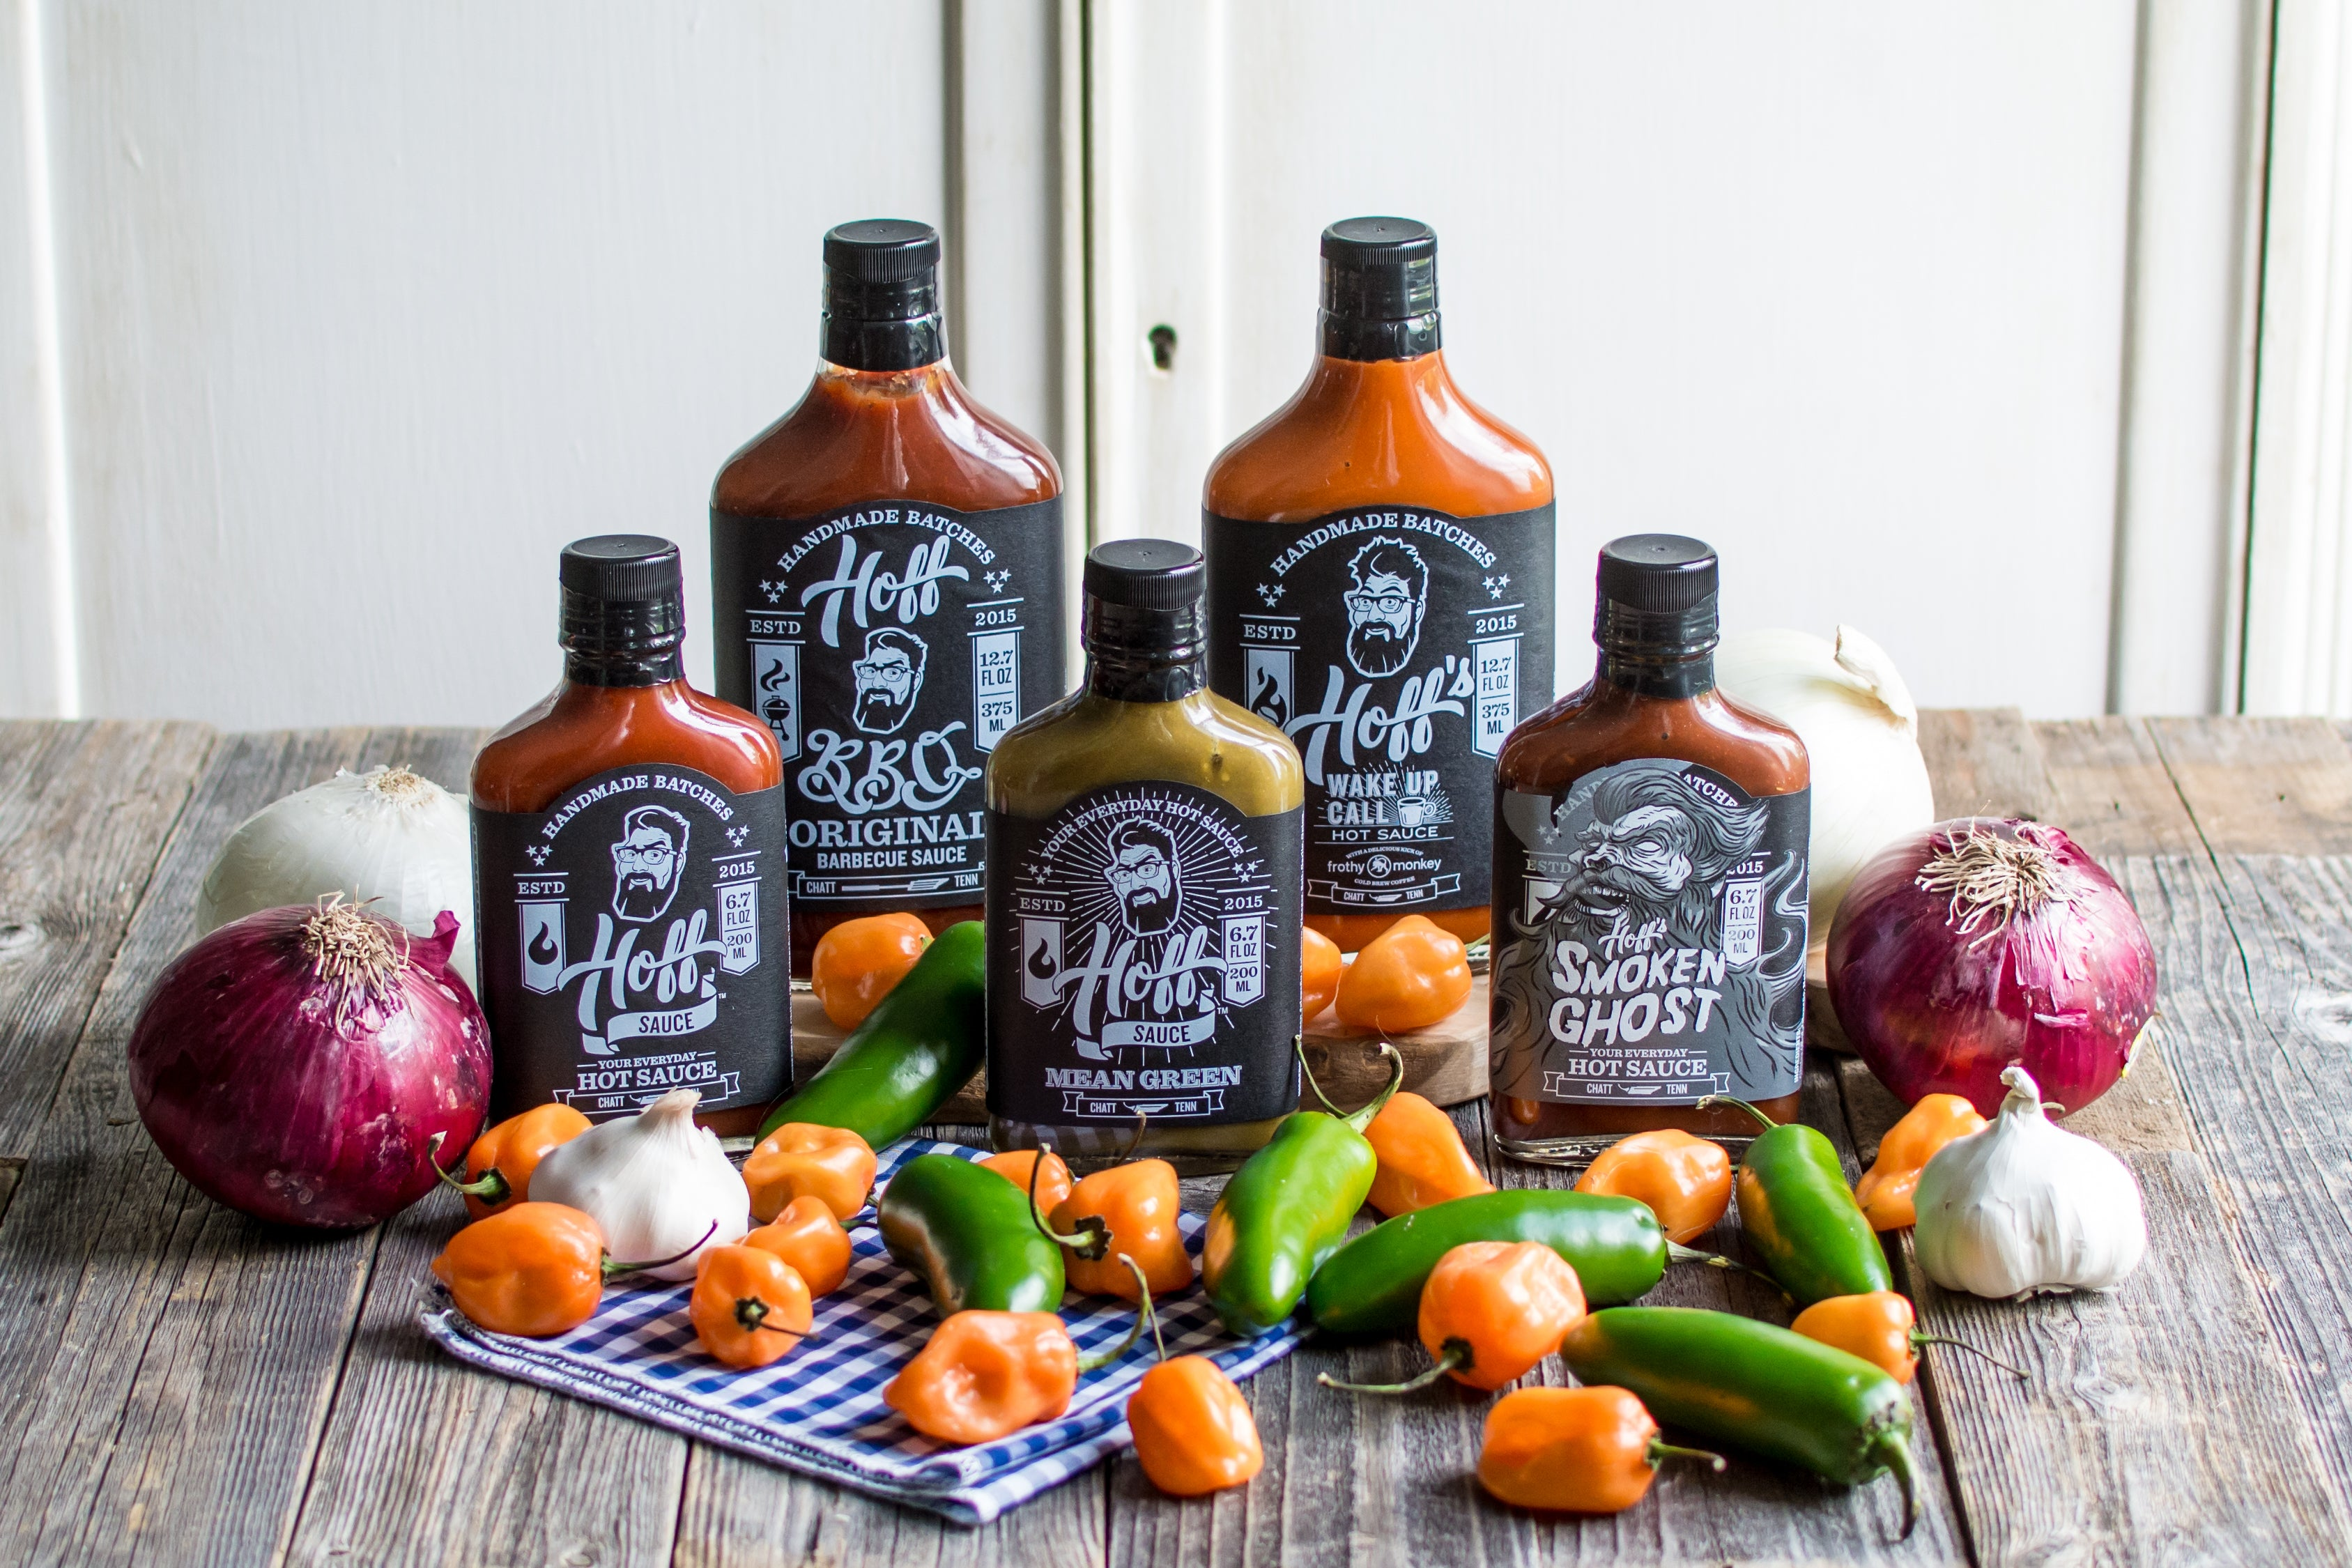 Smoken Ghost Hot Sauce